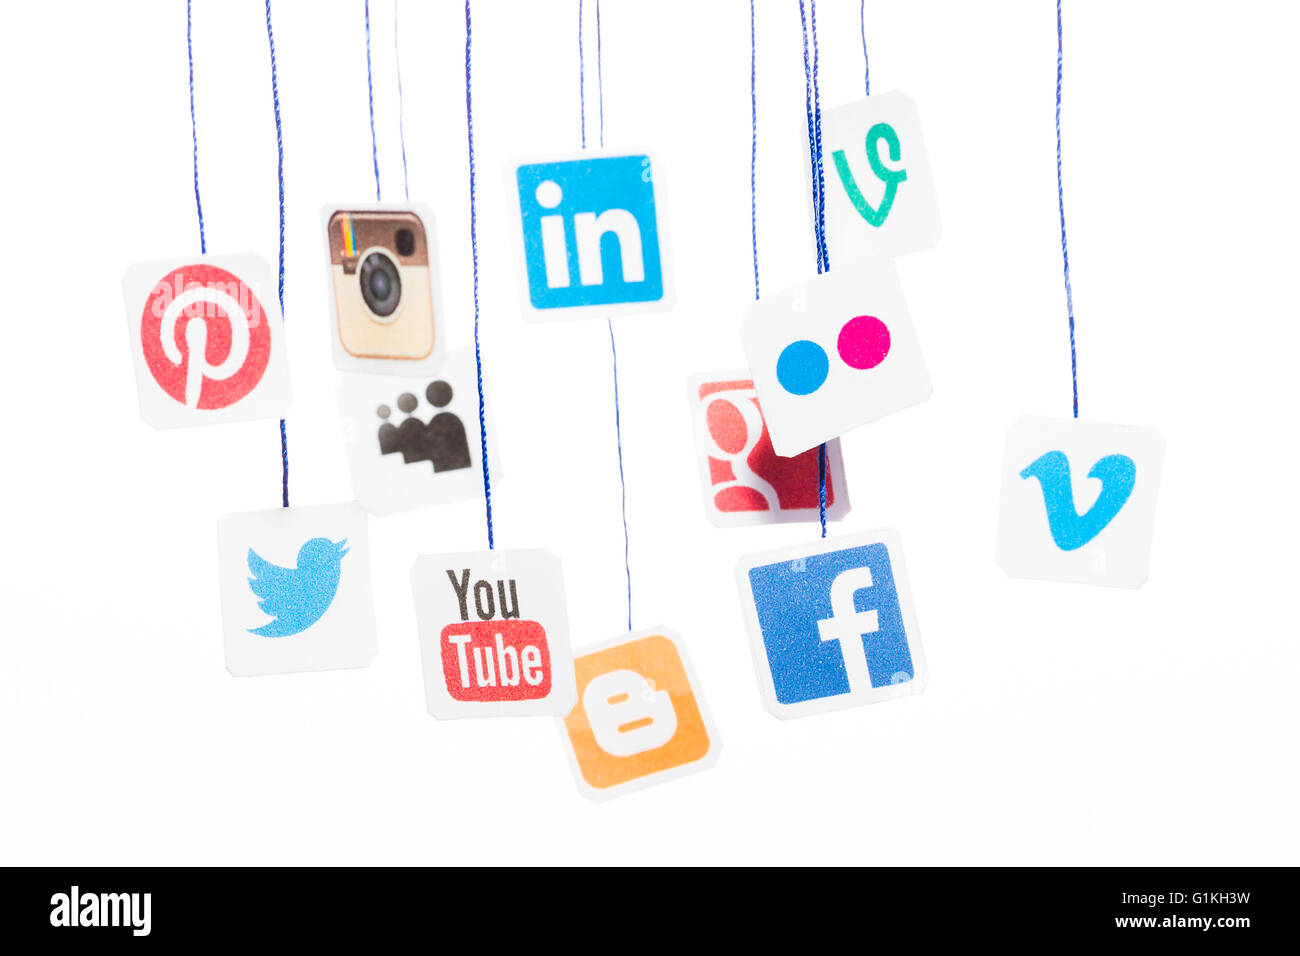 BELCHATOW, POLAND - AUGUST 31, 2014: Popular social media website logos printed on paper and hanging on strings. - Stock Image